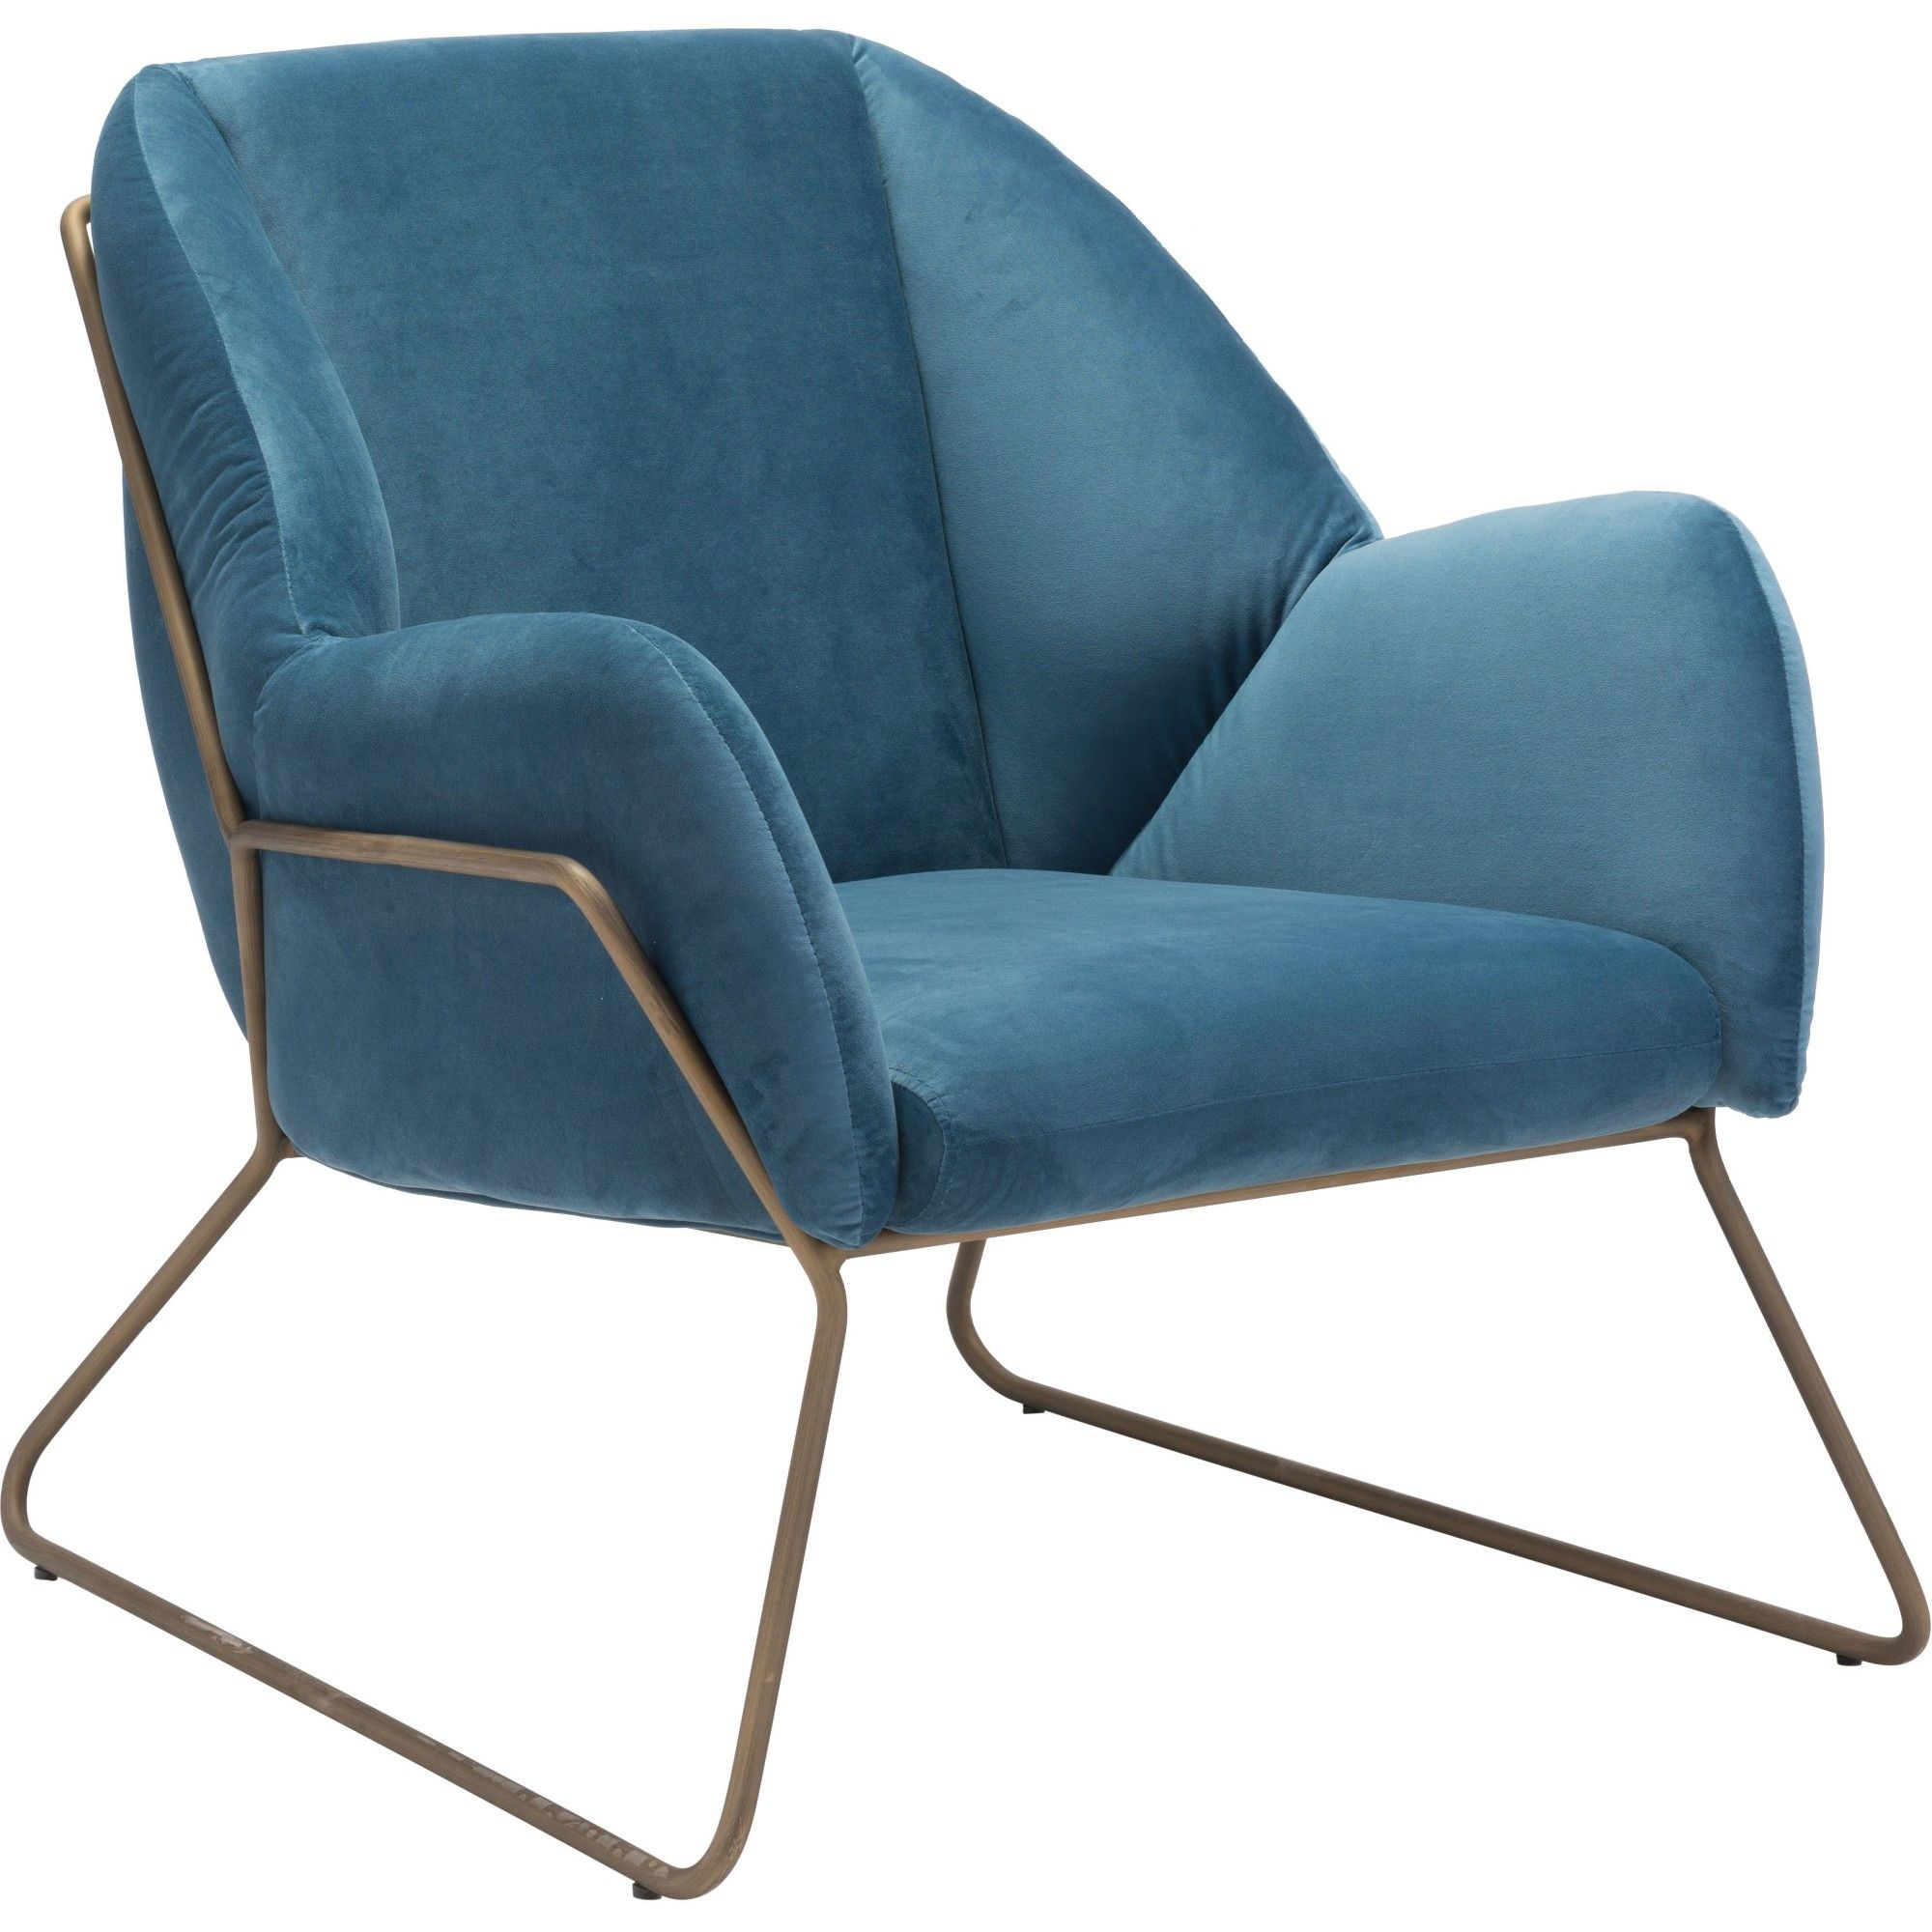 Inspiration about Modern Velvet Arm Chair Blue – Zm Home In 2019 | Products With Regard To Modern Blue Fabric Rocking Arm Chairs (#3 of 20)